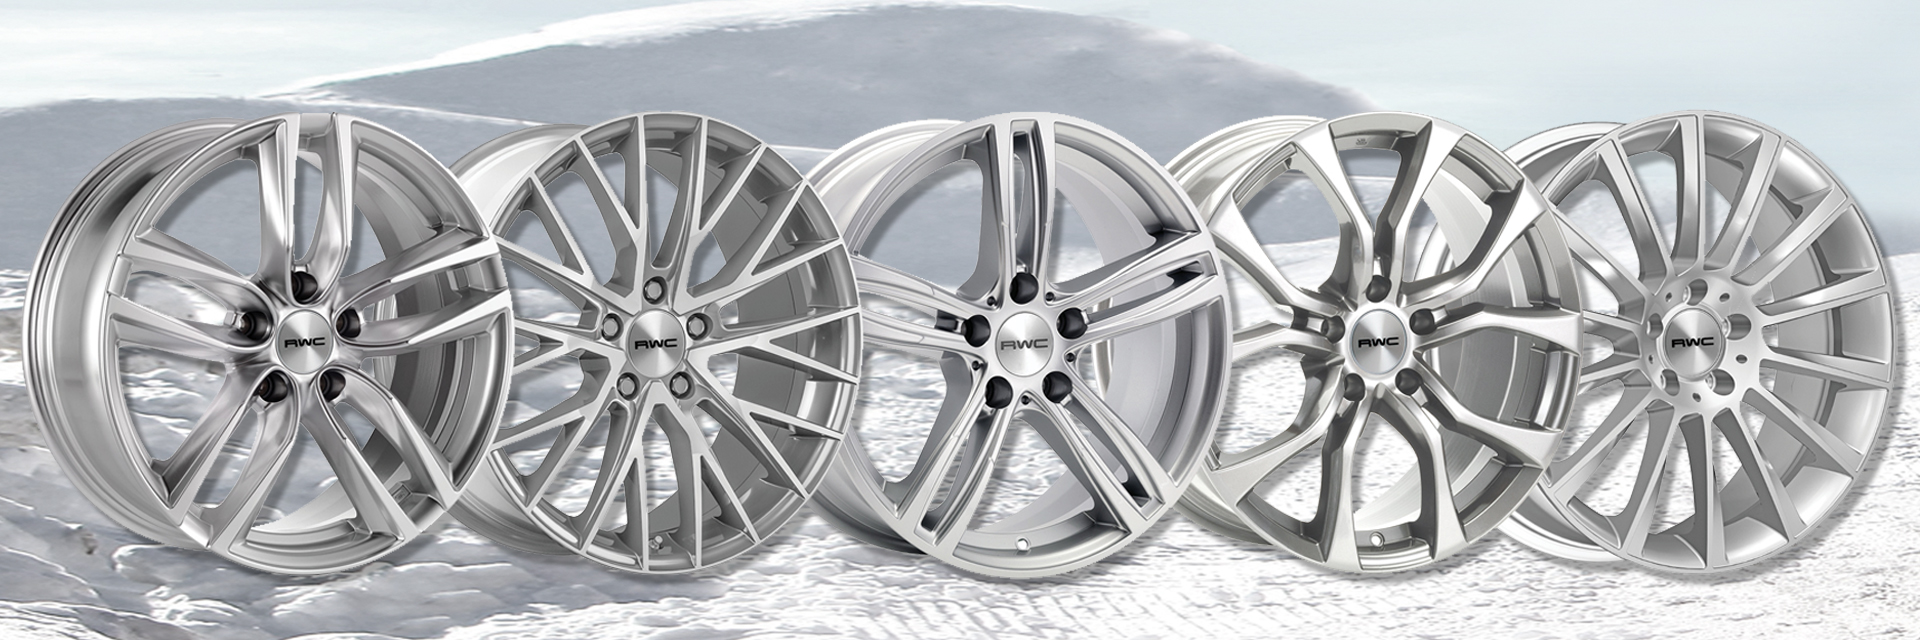 winter-wheels